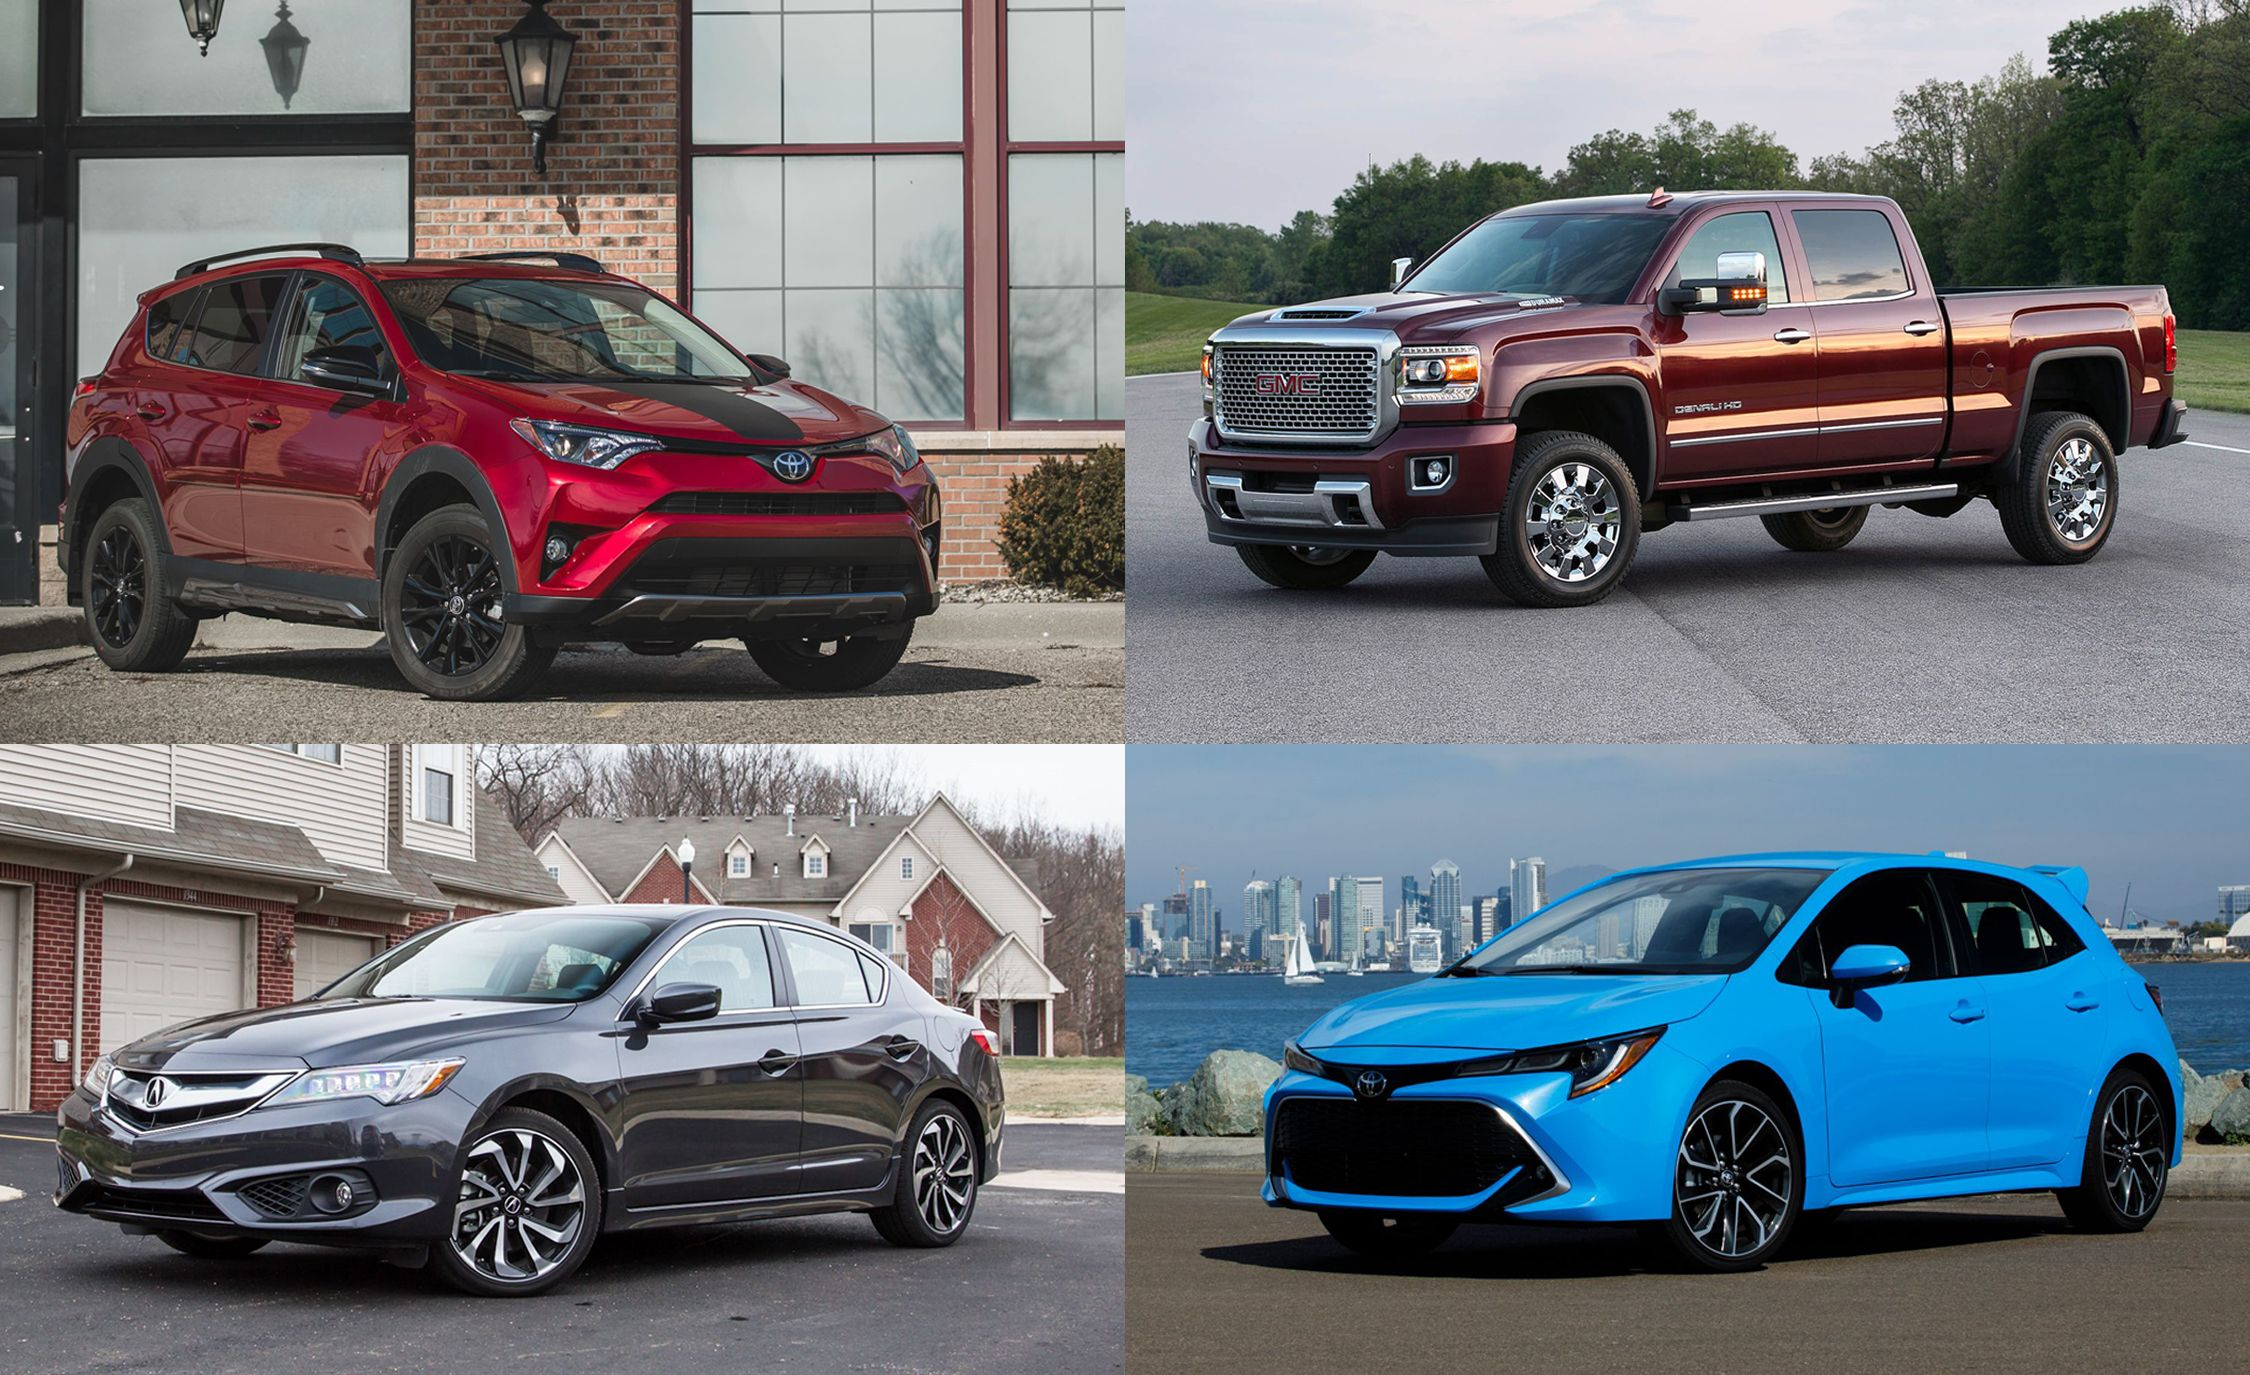 $199 Lease Deals on Cars, Trucks, and SUVs for August 2018